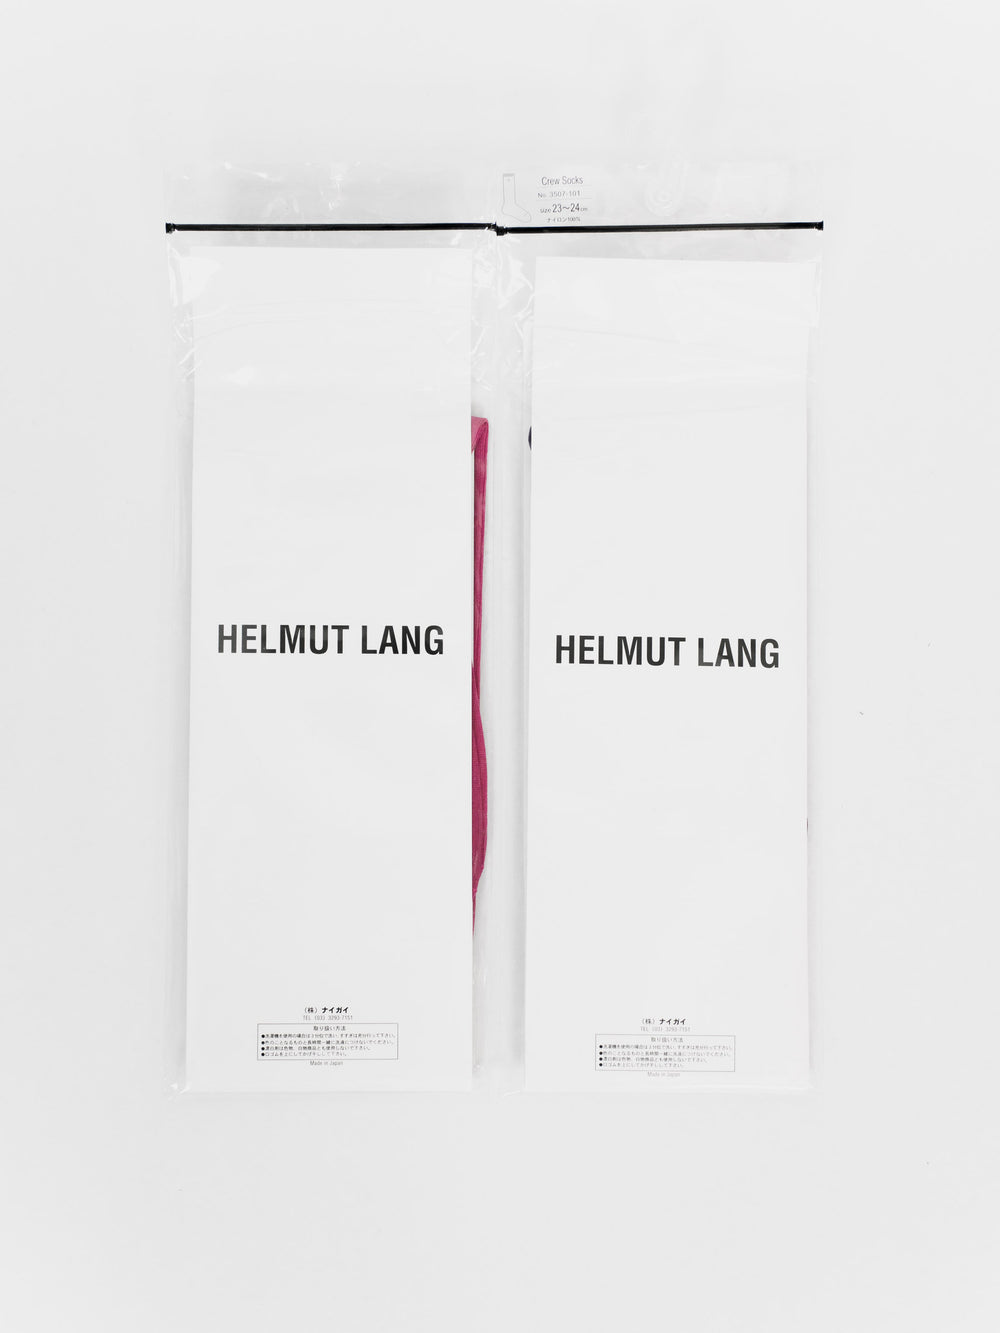 Helmut Lang Set of Original Embroidered Socks